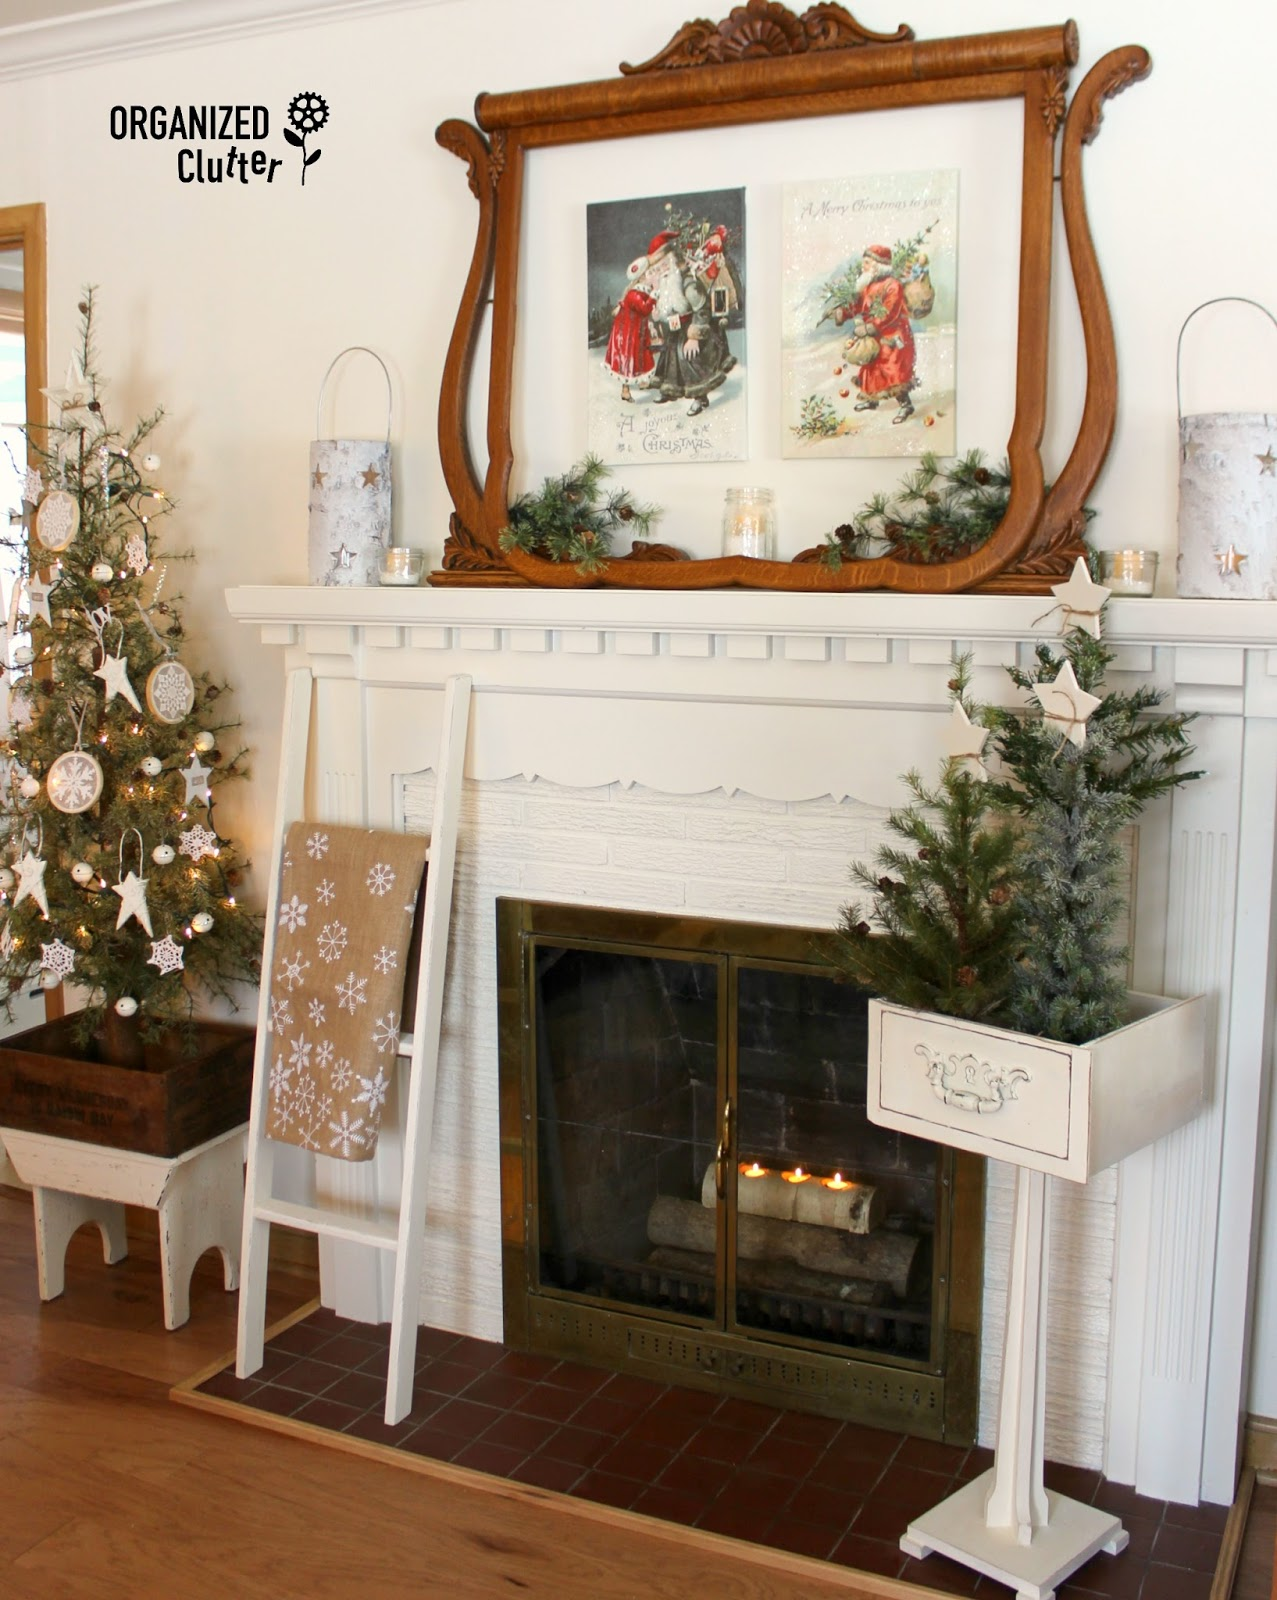 organized clutter 2016 christmas mantel with vintage dresser